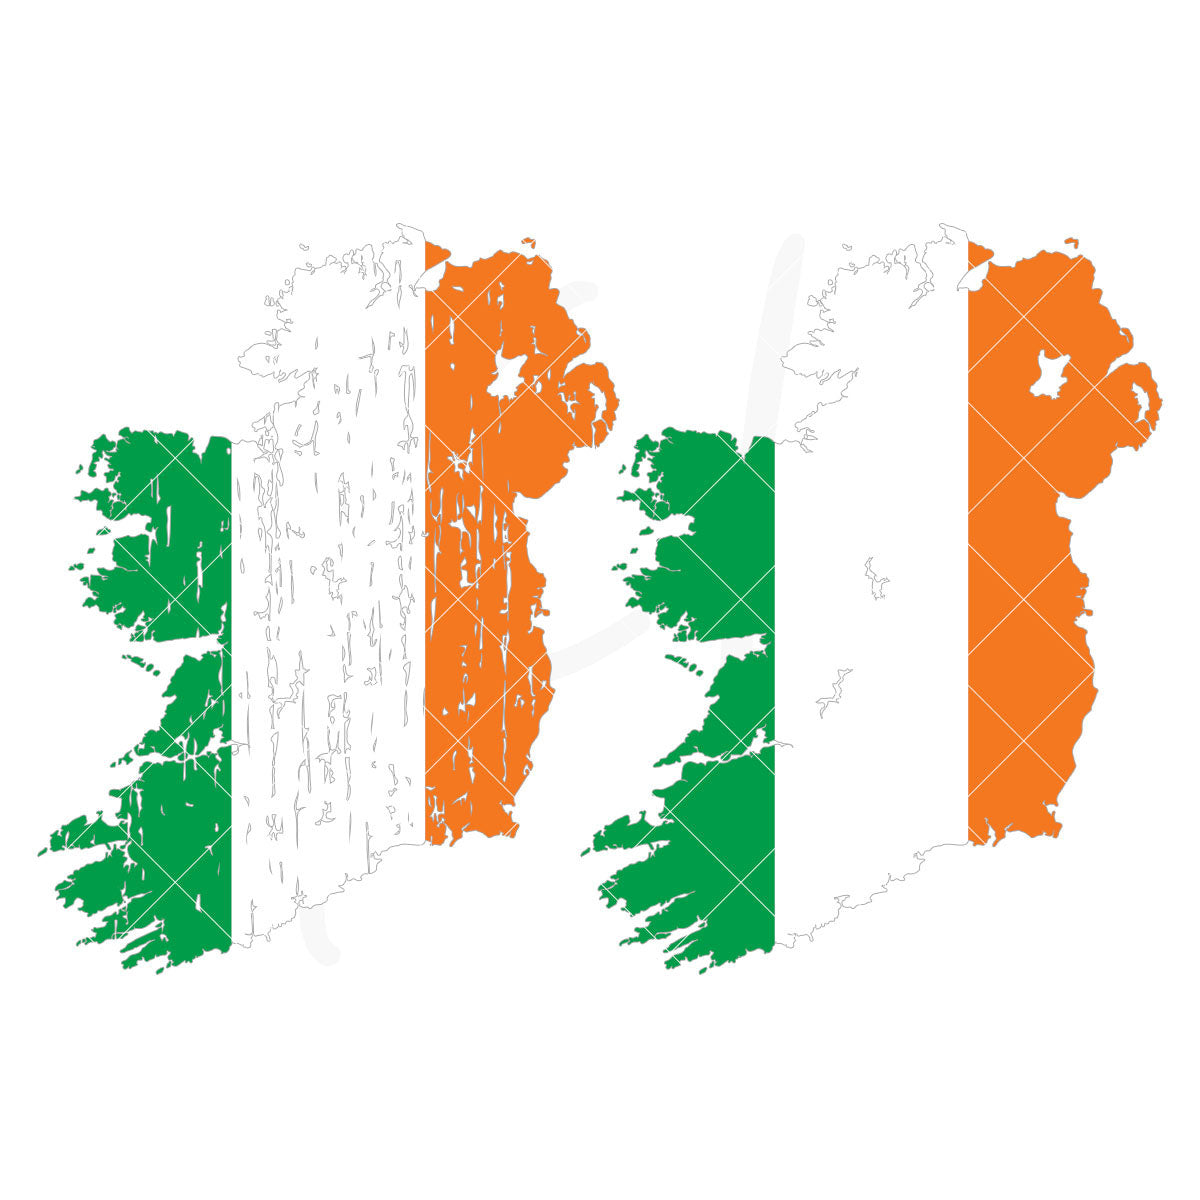 Ireland svg using the flag colors available in plain, distressed or both